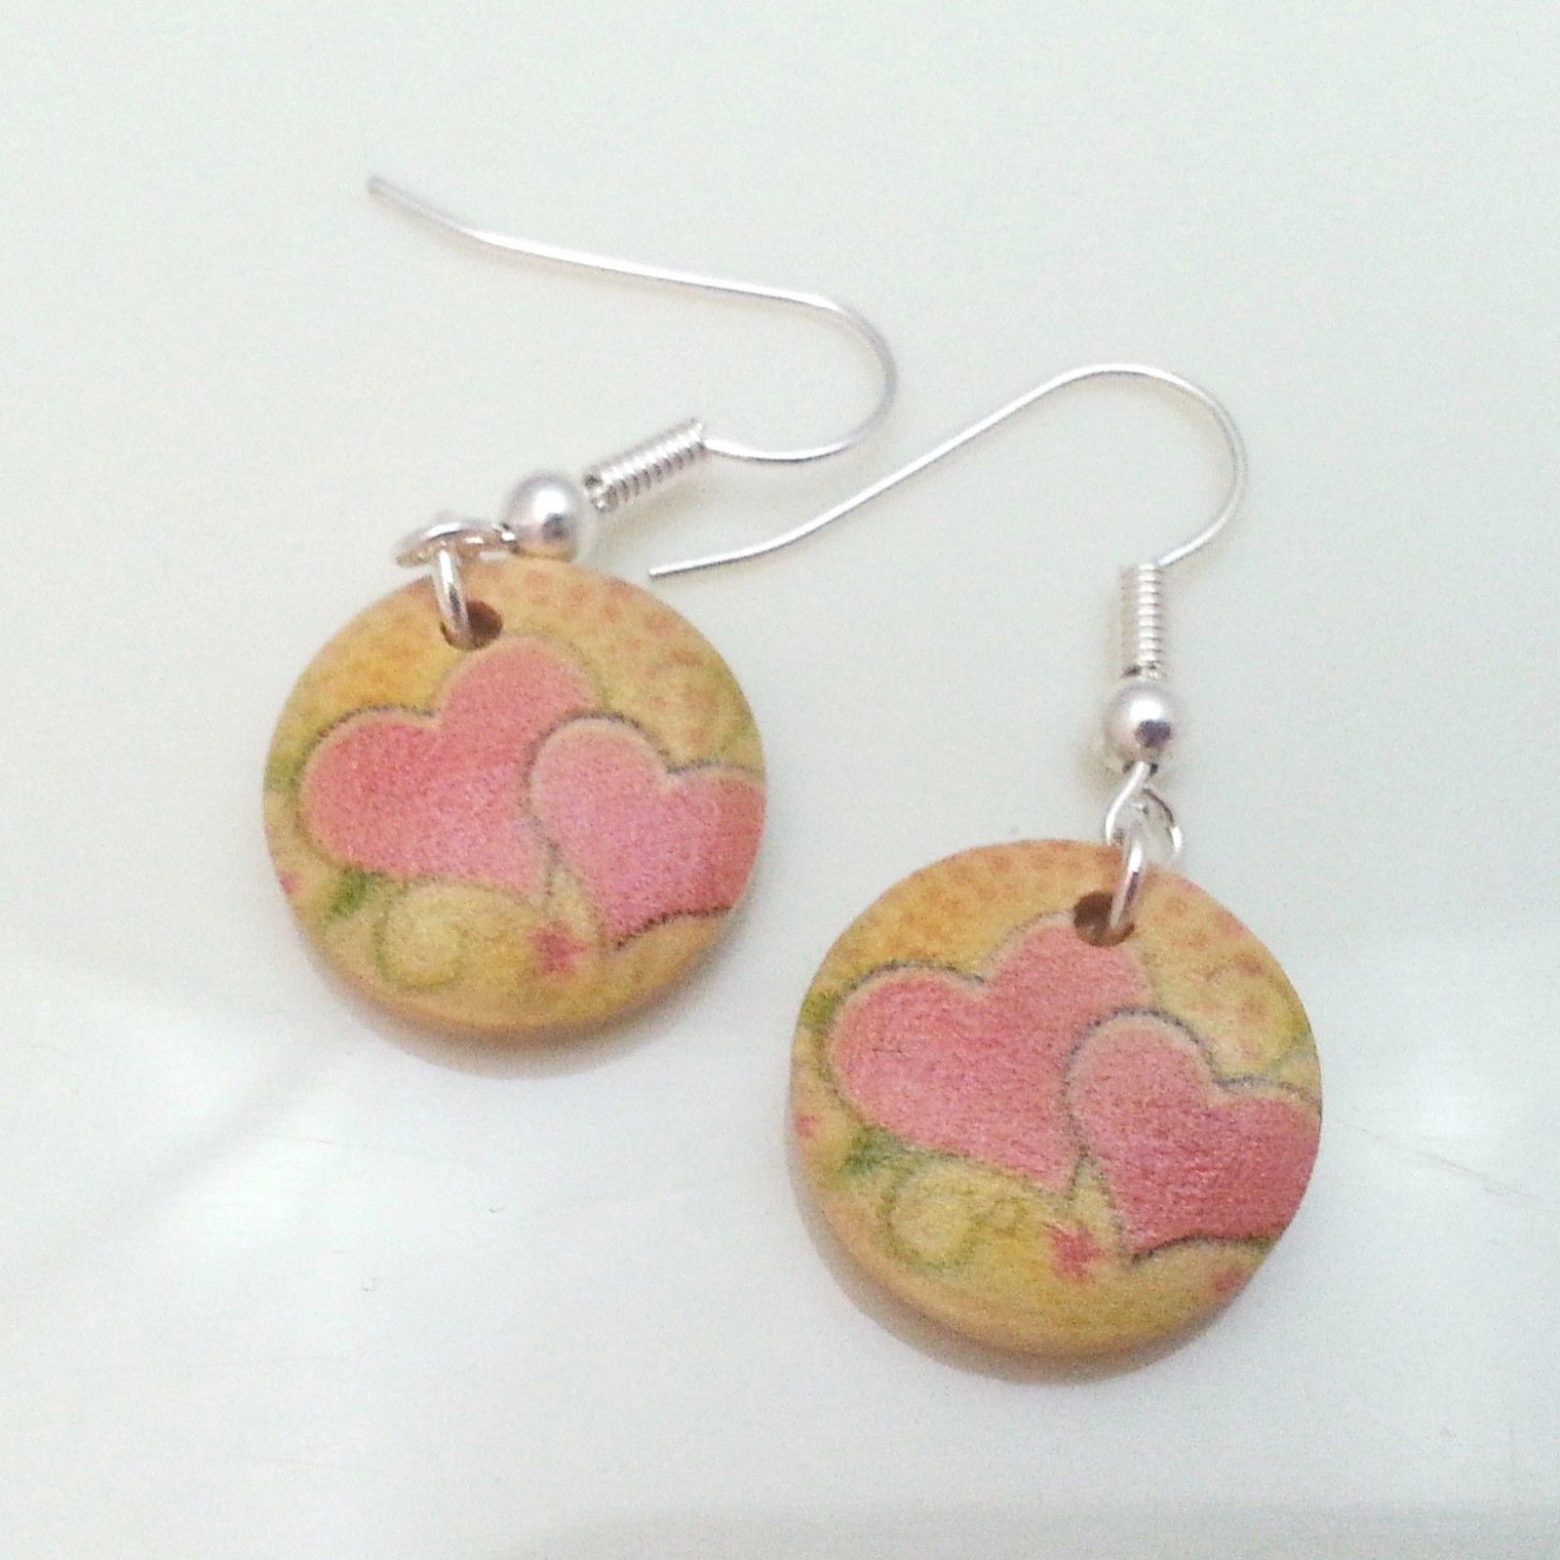 Light-Wooden-Jewellery-Earrings-Disc-Round-Wood-Pink-Hearts-Flowers-Womens-New-400739840145-3